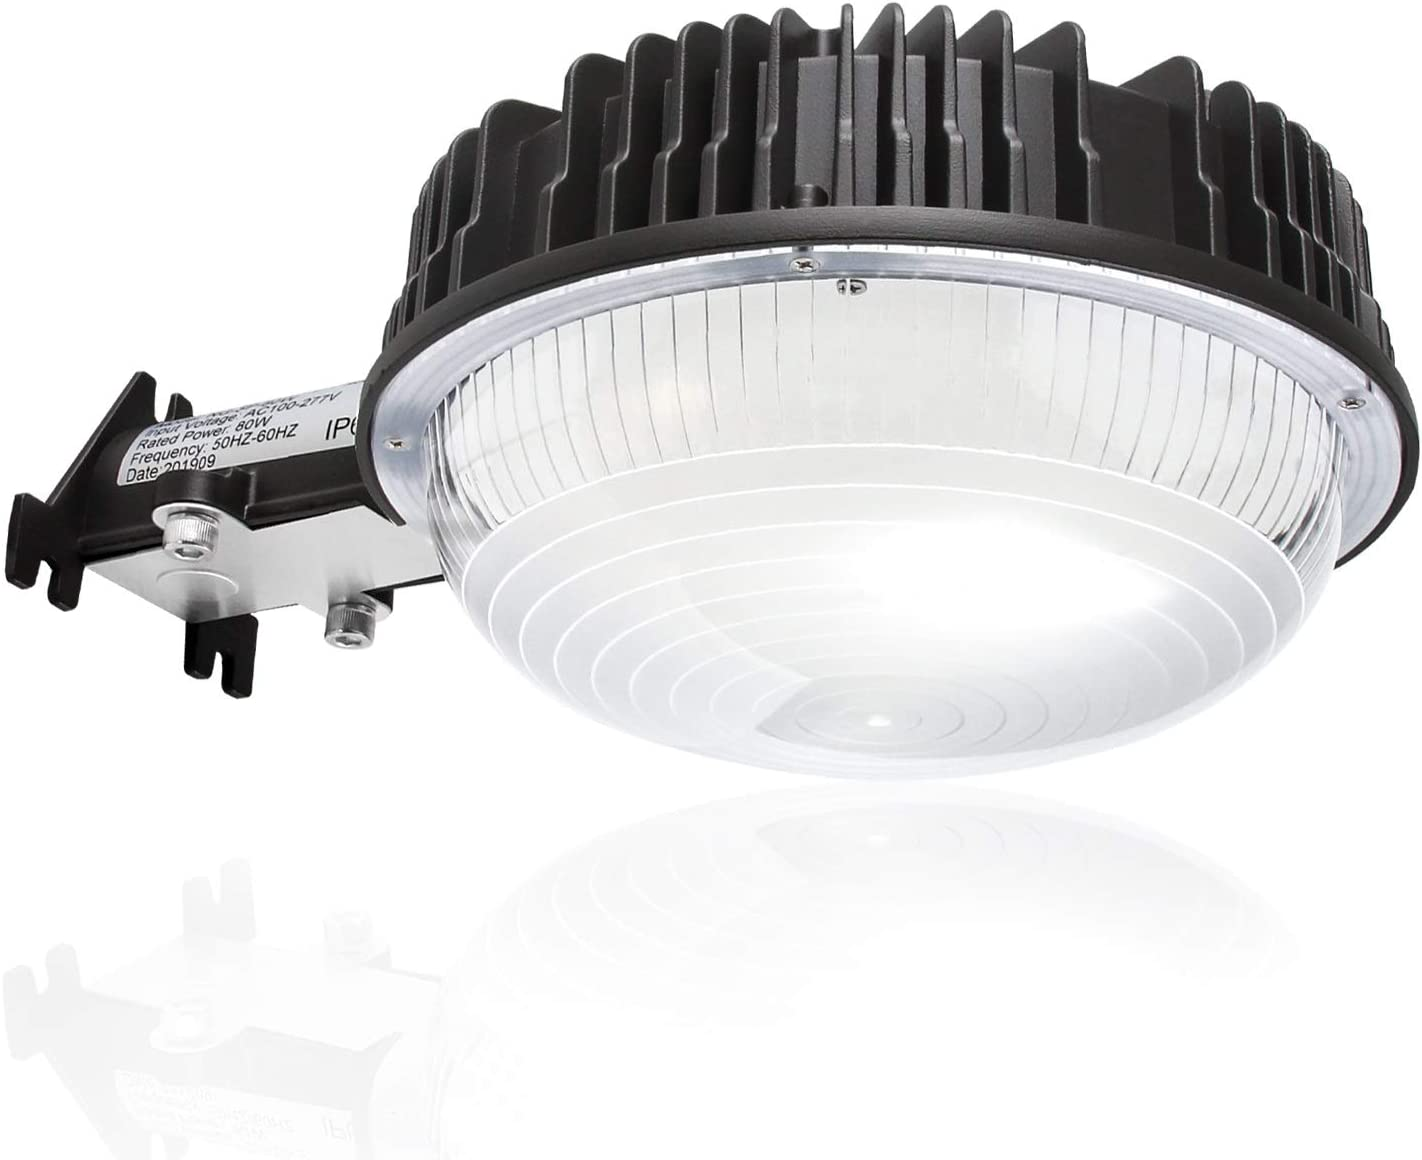 5000K Daylight IP65 Waterproof ETL/&DLC Listed for Yard Street Flood Lights DuuToo LightPRO 70W 9900LM LED Barn Lights Dusk to Dawn Outdoor Area Lights with Photocell 700W Incandescent Equiv.